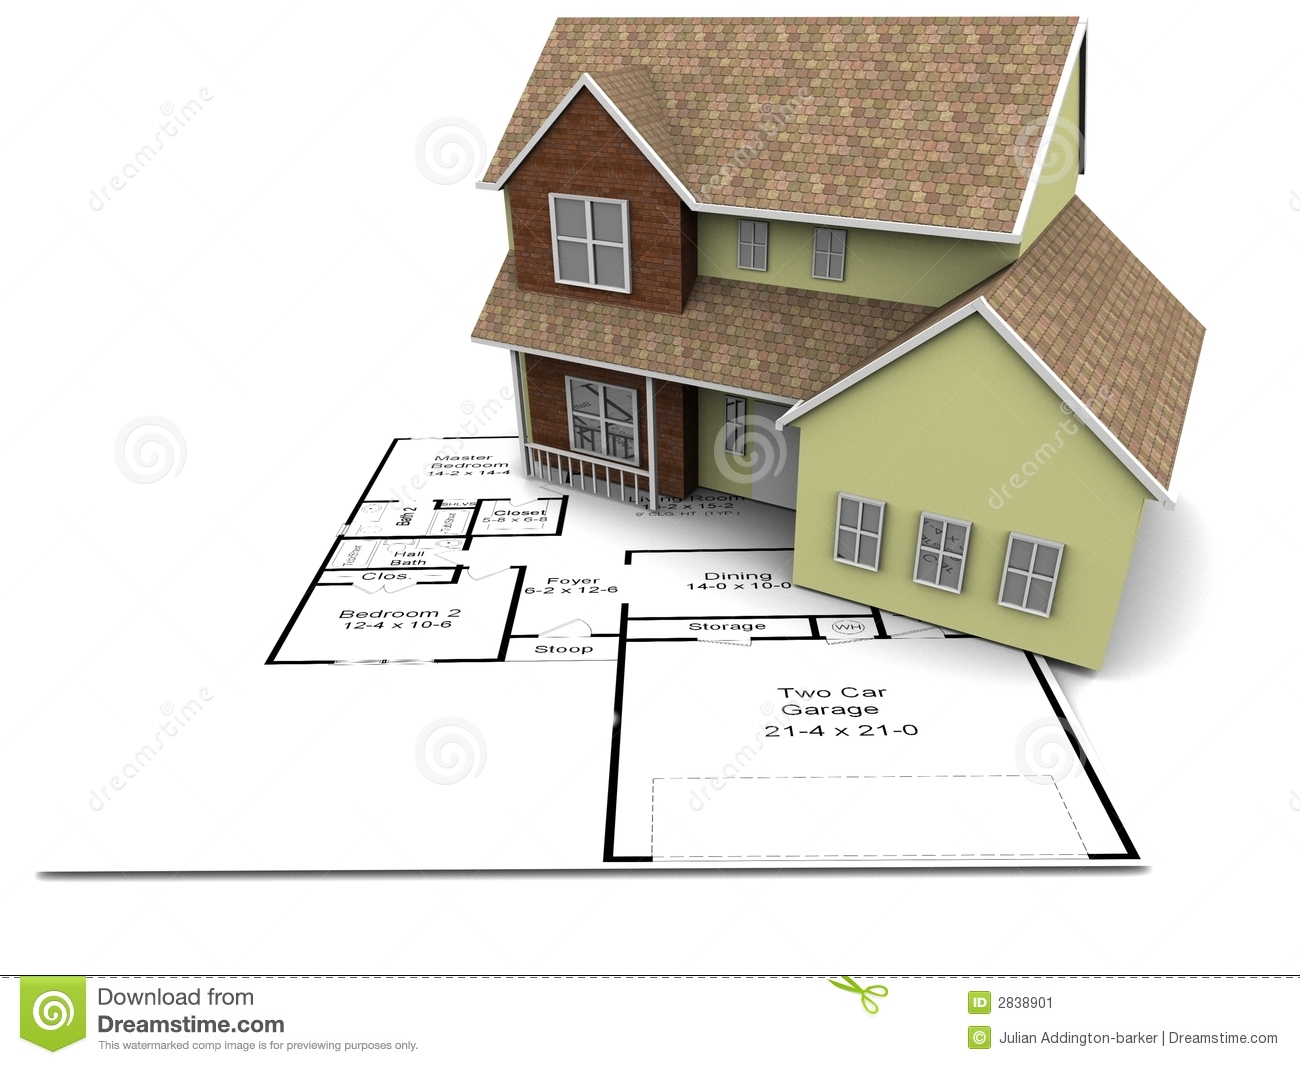 New house plans stock image image 2838901 for Where to get house plans